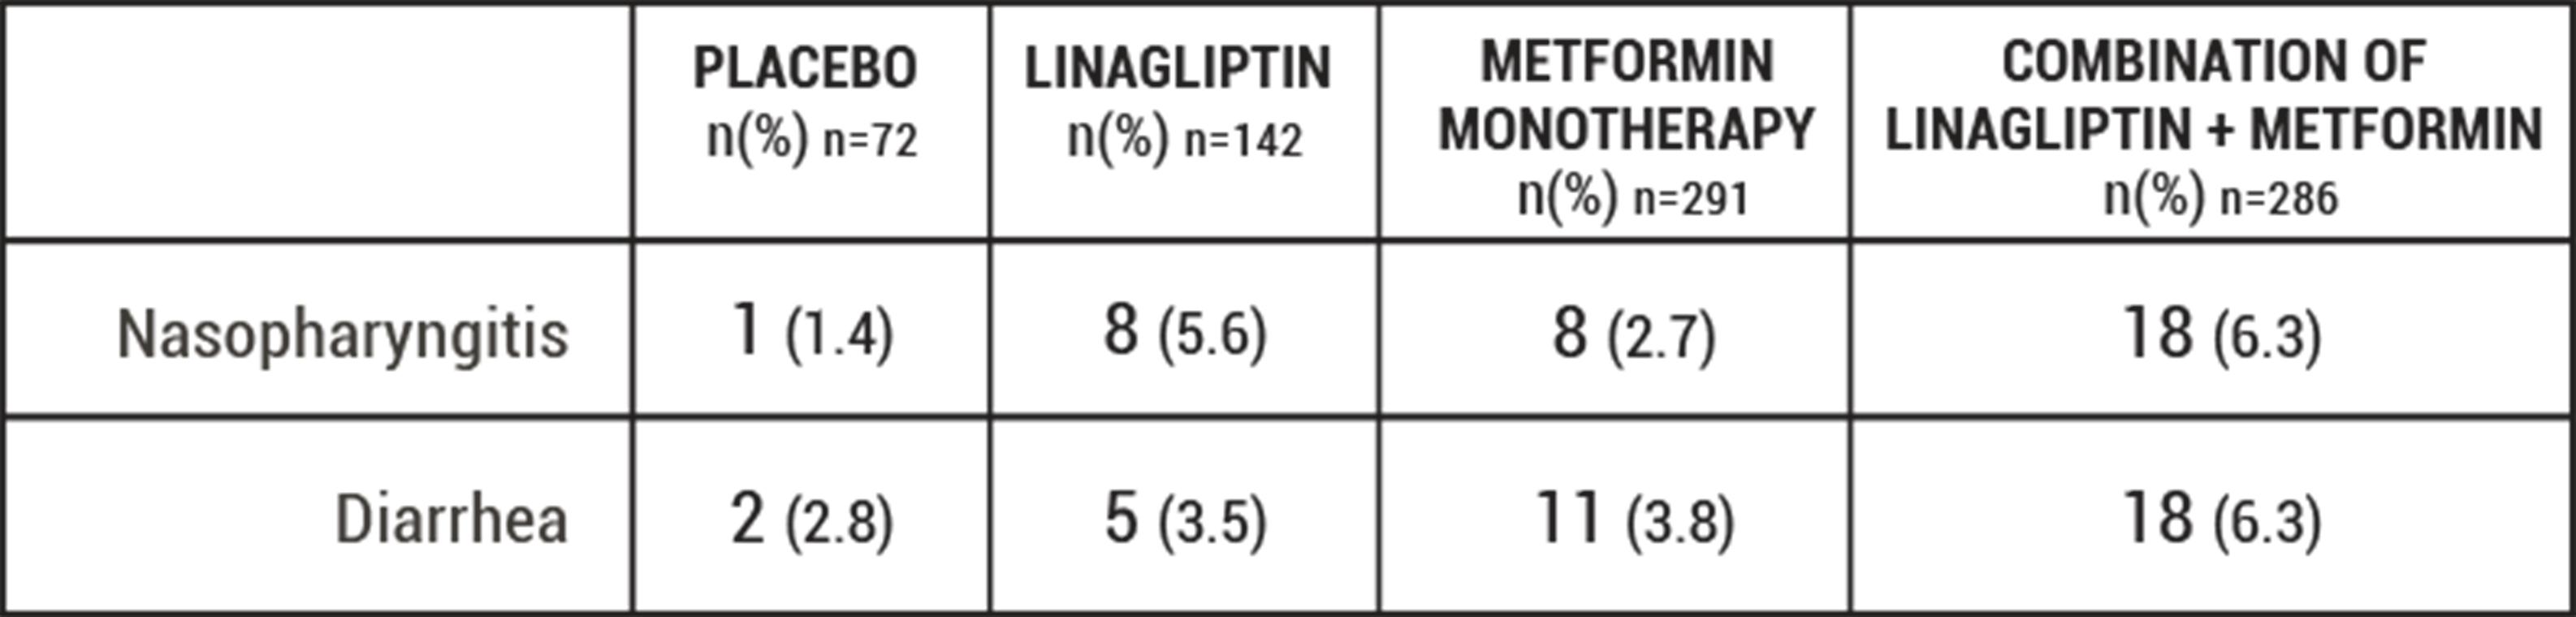 Adverse Reactions in Linagliptin vs. Placebo